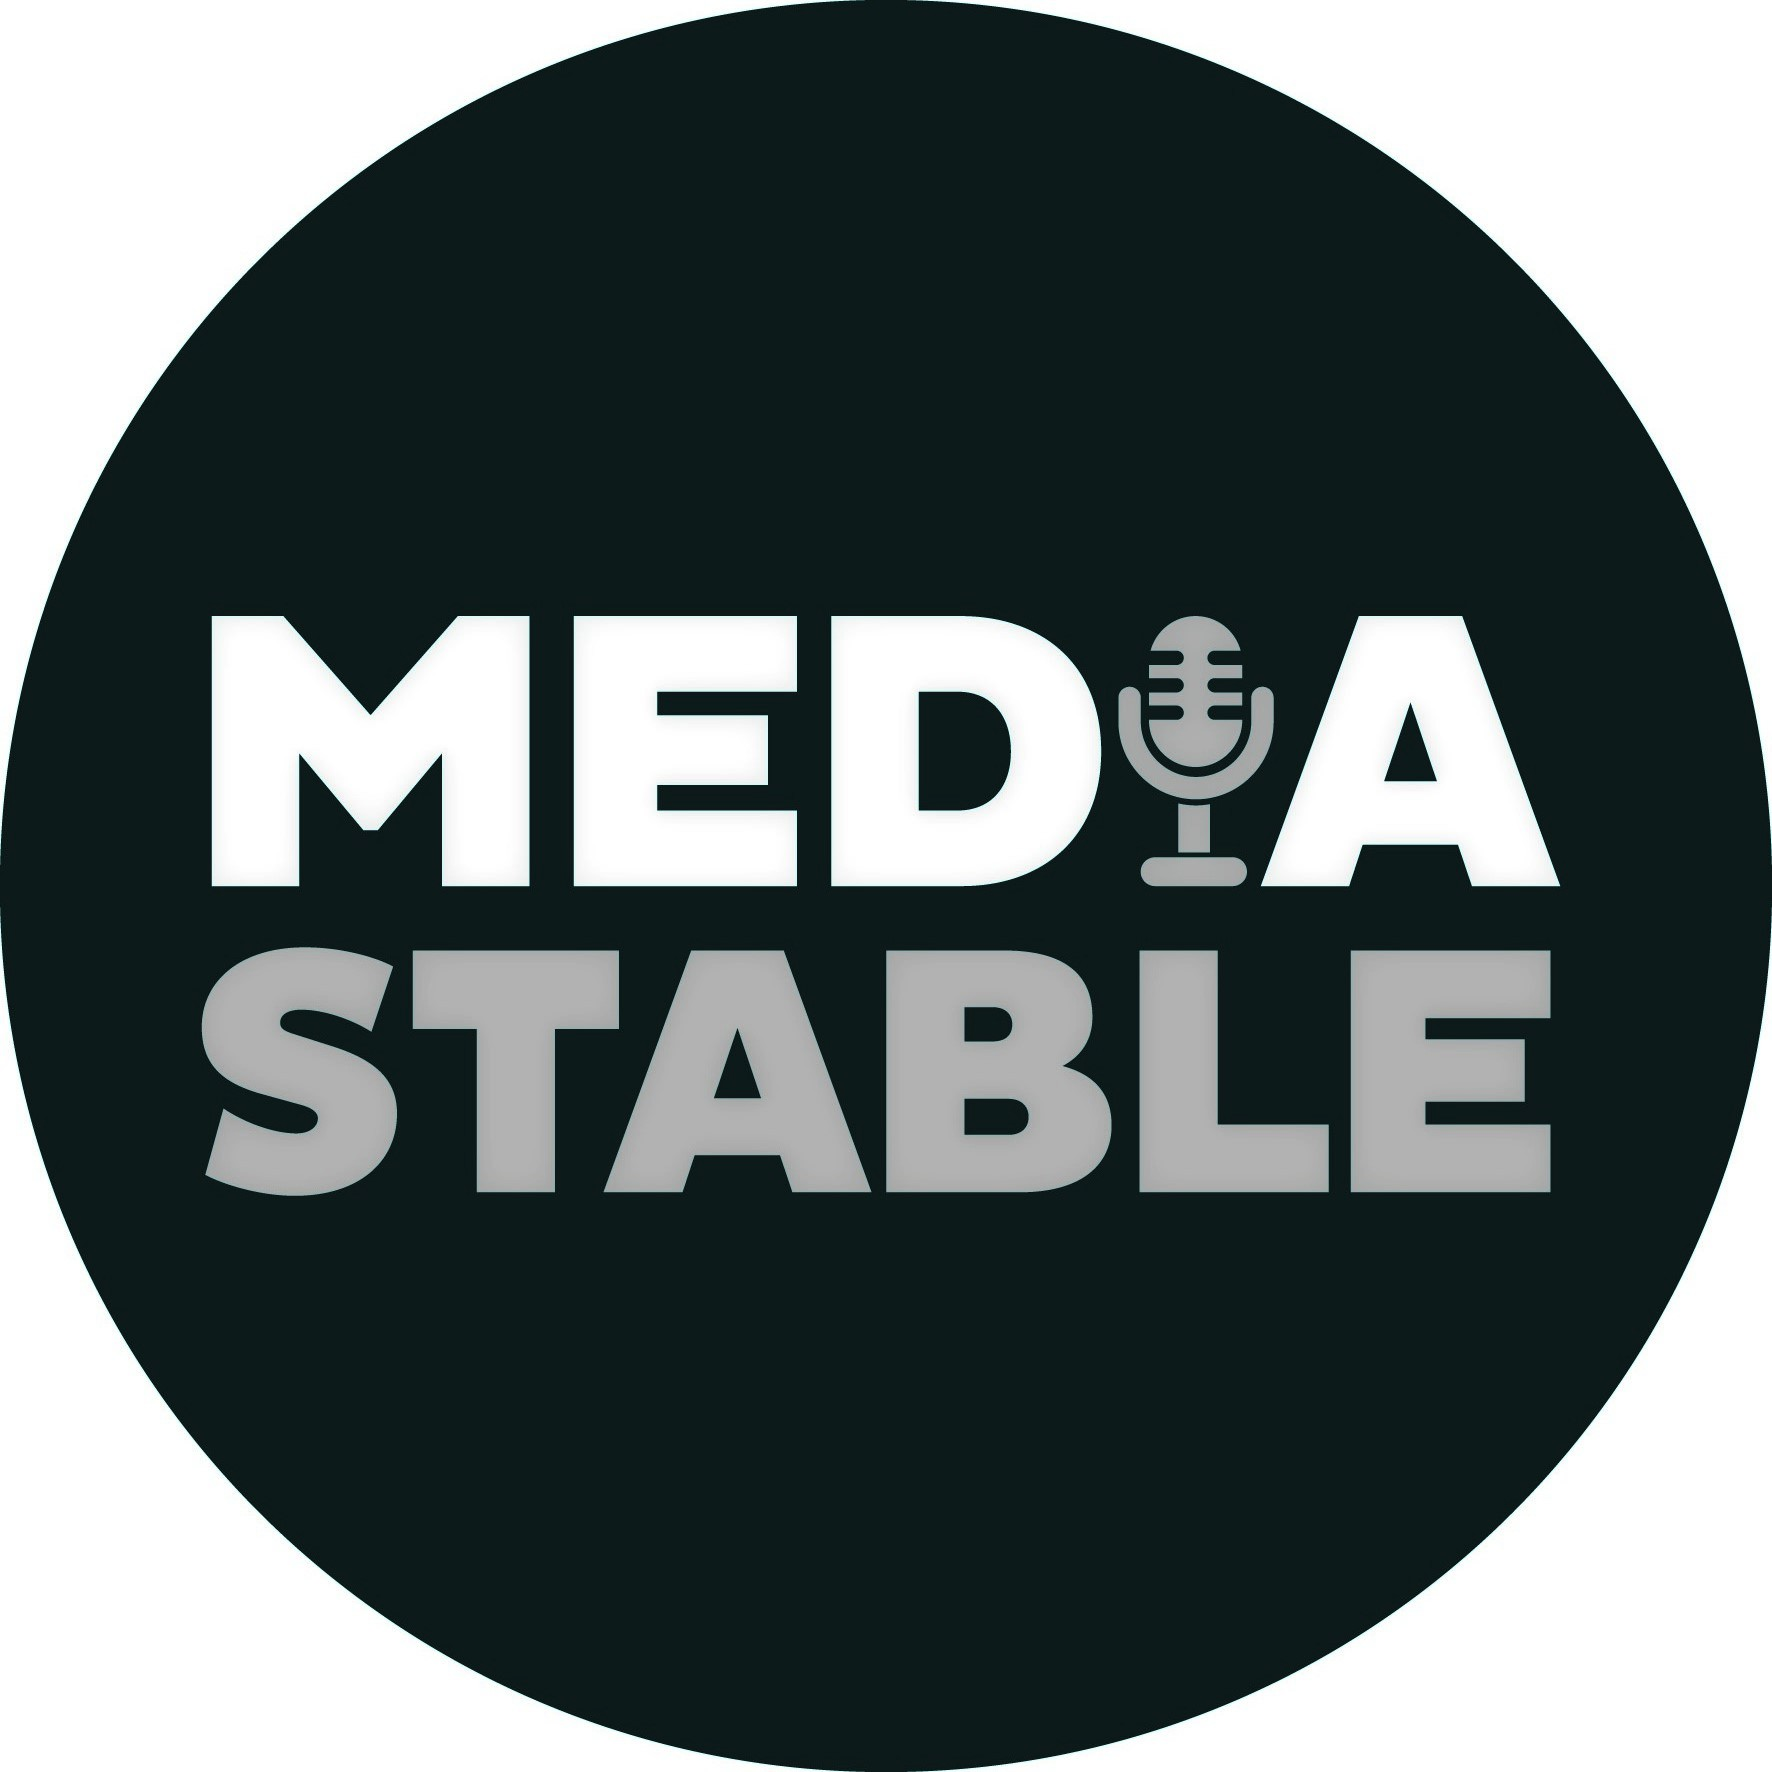 #MeetTheMedia, Australia's leading media introduction event, happening soon on Thursday 24th May